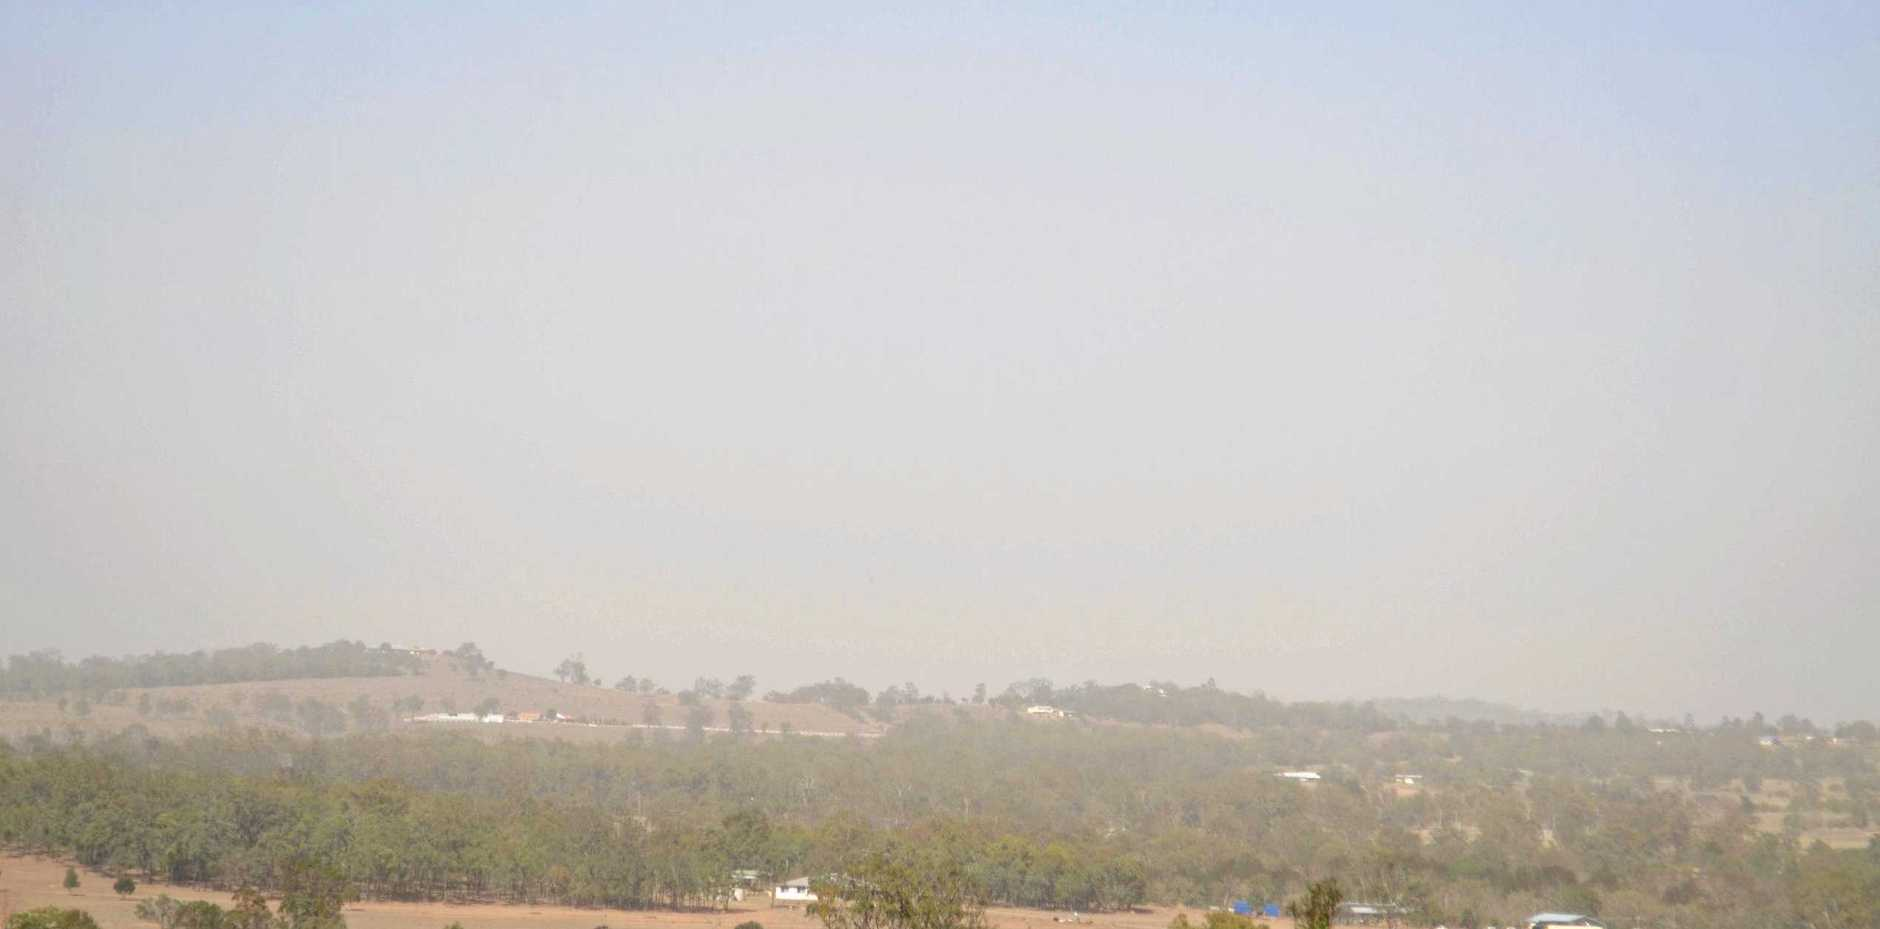 Dangerous levels of smoke as bushfires rage nearby.